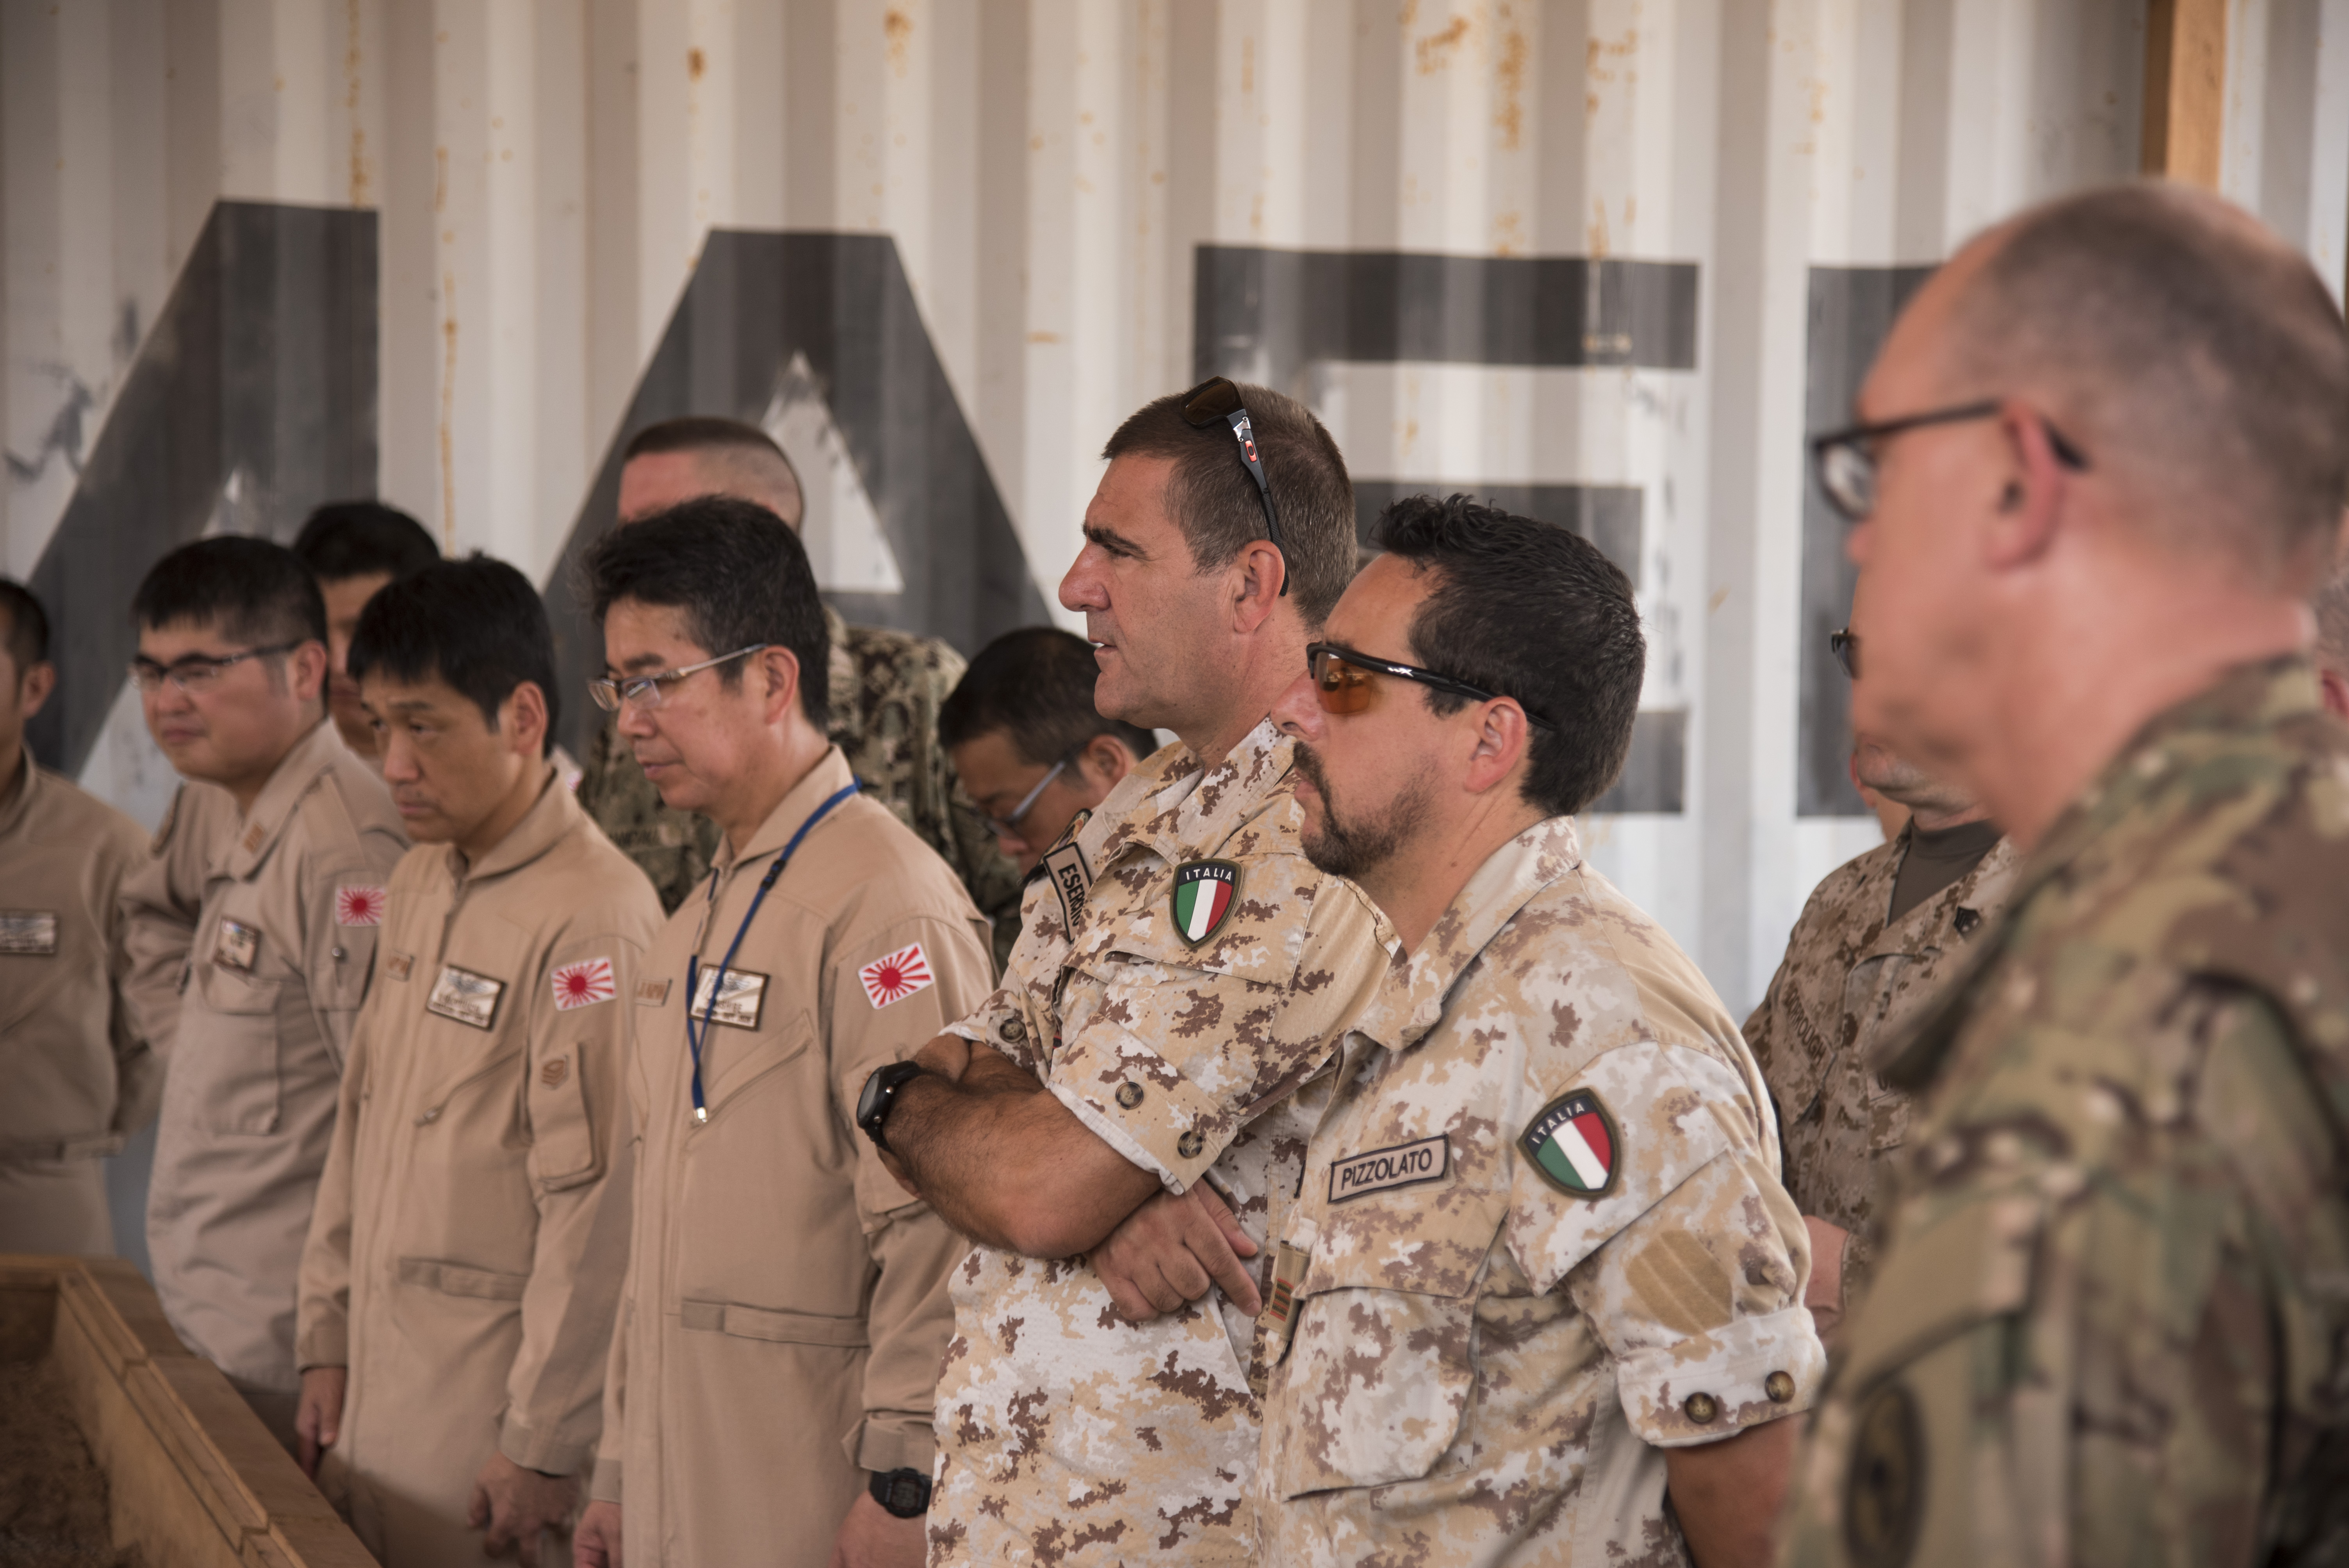 DJIBOUTI- Senior enlisted leaders from Japan, Italy and the U.S. attend the Combined Joint Forces Senior Enlisted Leader Professional Development course, June 8, 2016, at Djibouti. The course is scheduled to happen approximately every two months, and the coalition partners take turns hosting it at their respective bases. (U.S. Air Force photo by Staff Sgt. Tiffany DeNault)